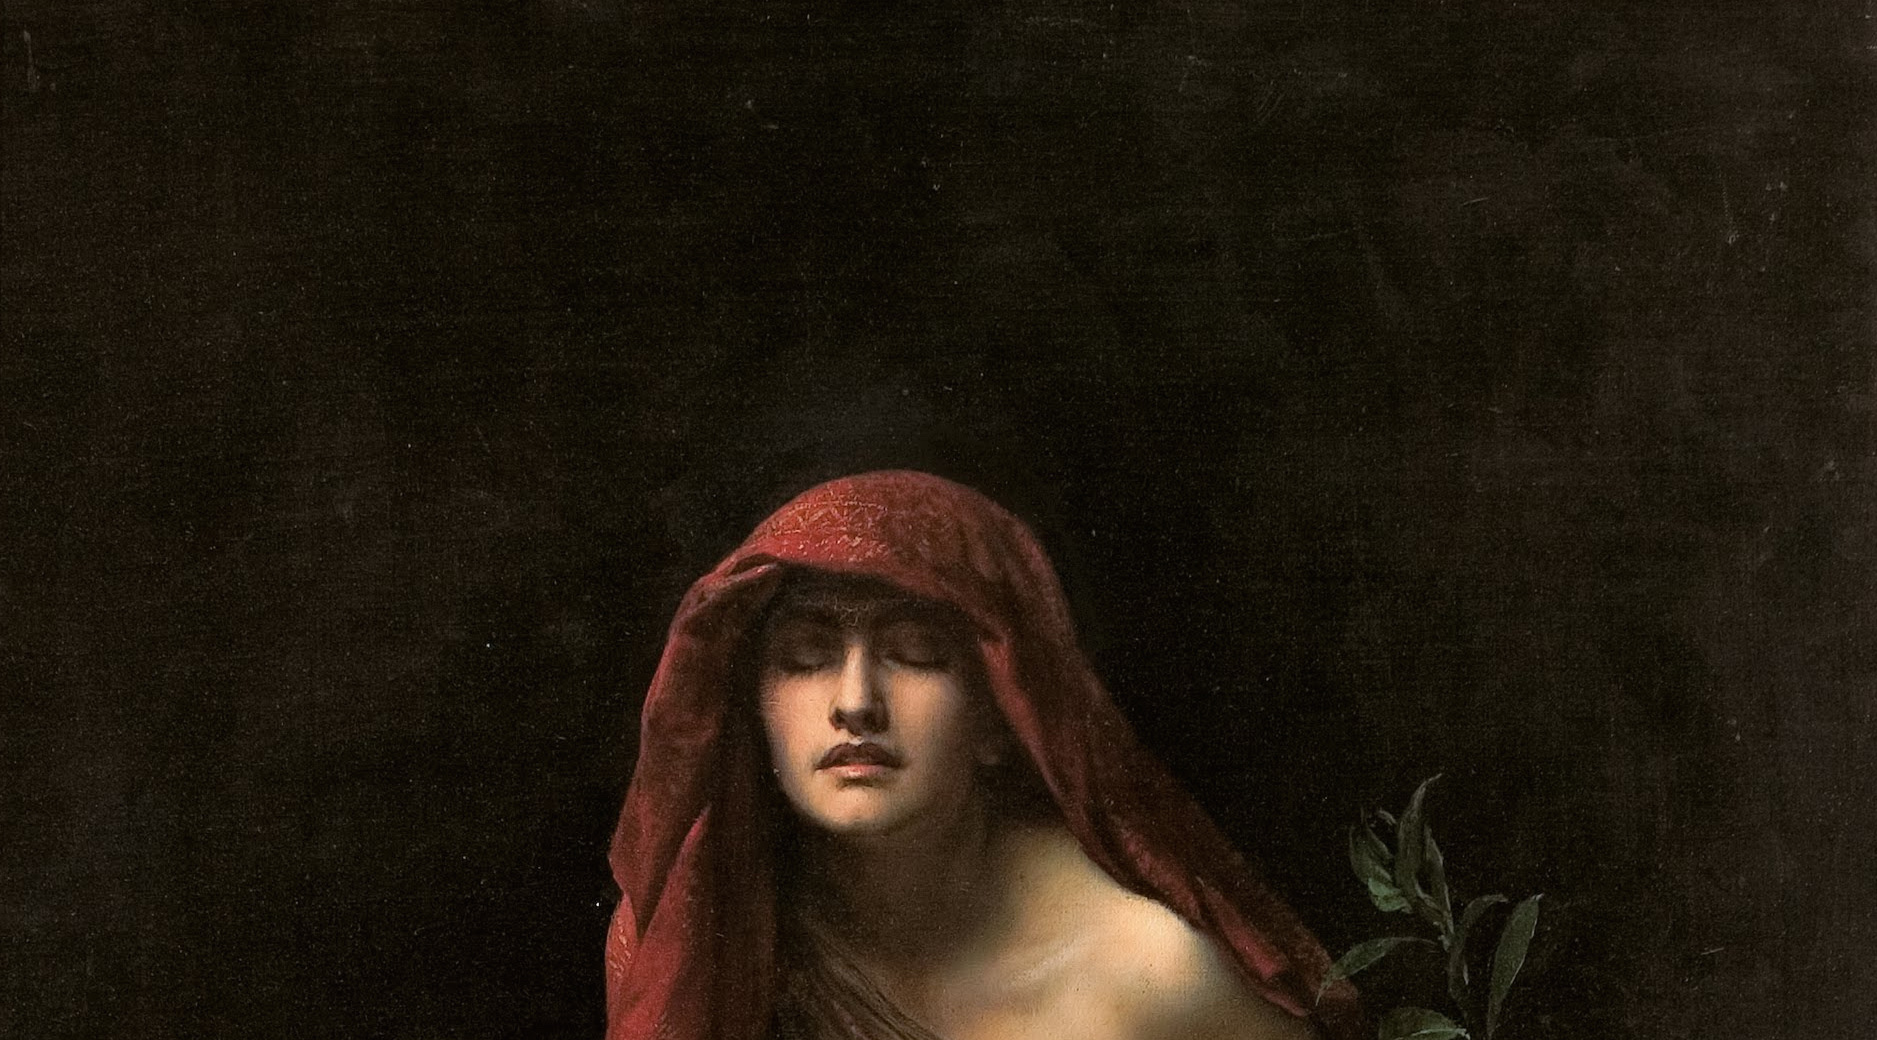 priestess of delphi detail of her face, closed eyes, rapt expression, red shawl draped over her head, bay leaf stalk peeking up to her left